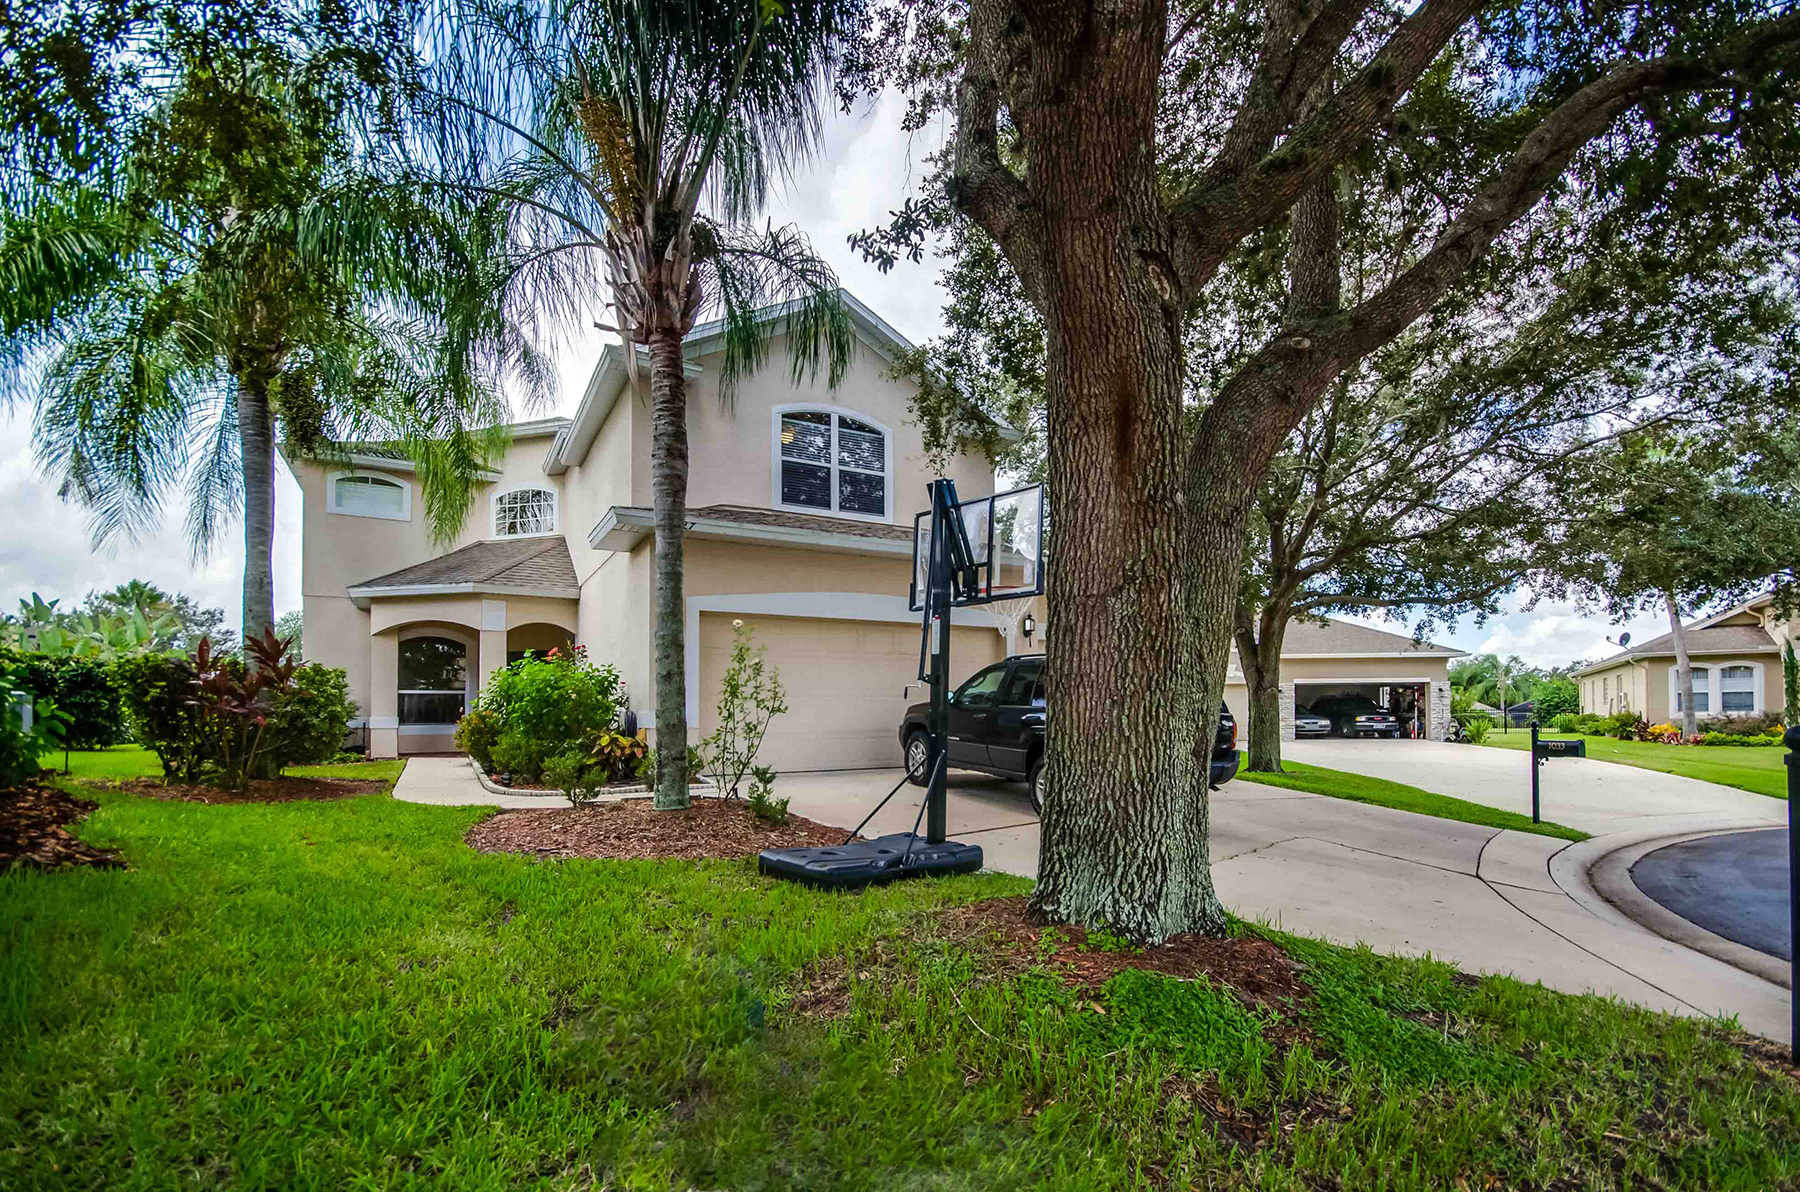 Casa Unifamiliar por un Venta en LAKE MARY - HEATHROW 1027 Ridgemount Pl Lake Mary, Florida, 32746 Estados Unidos